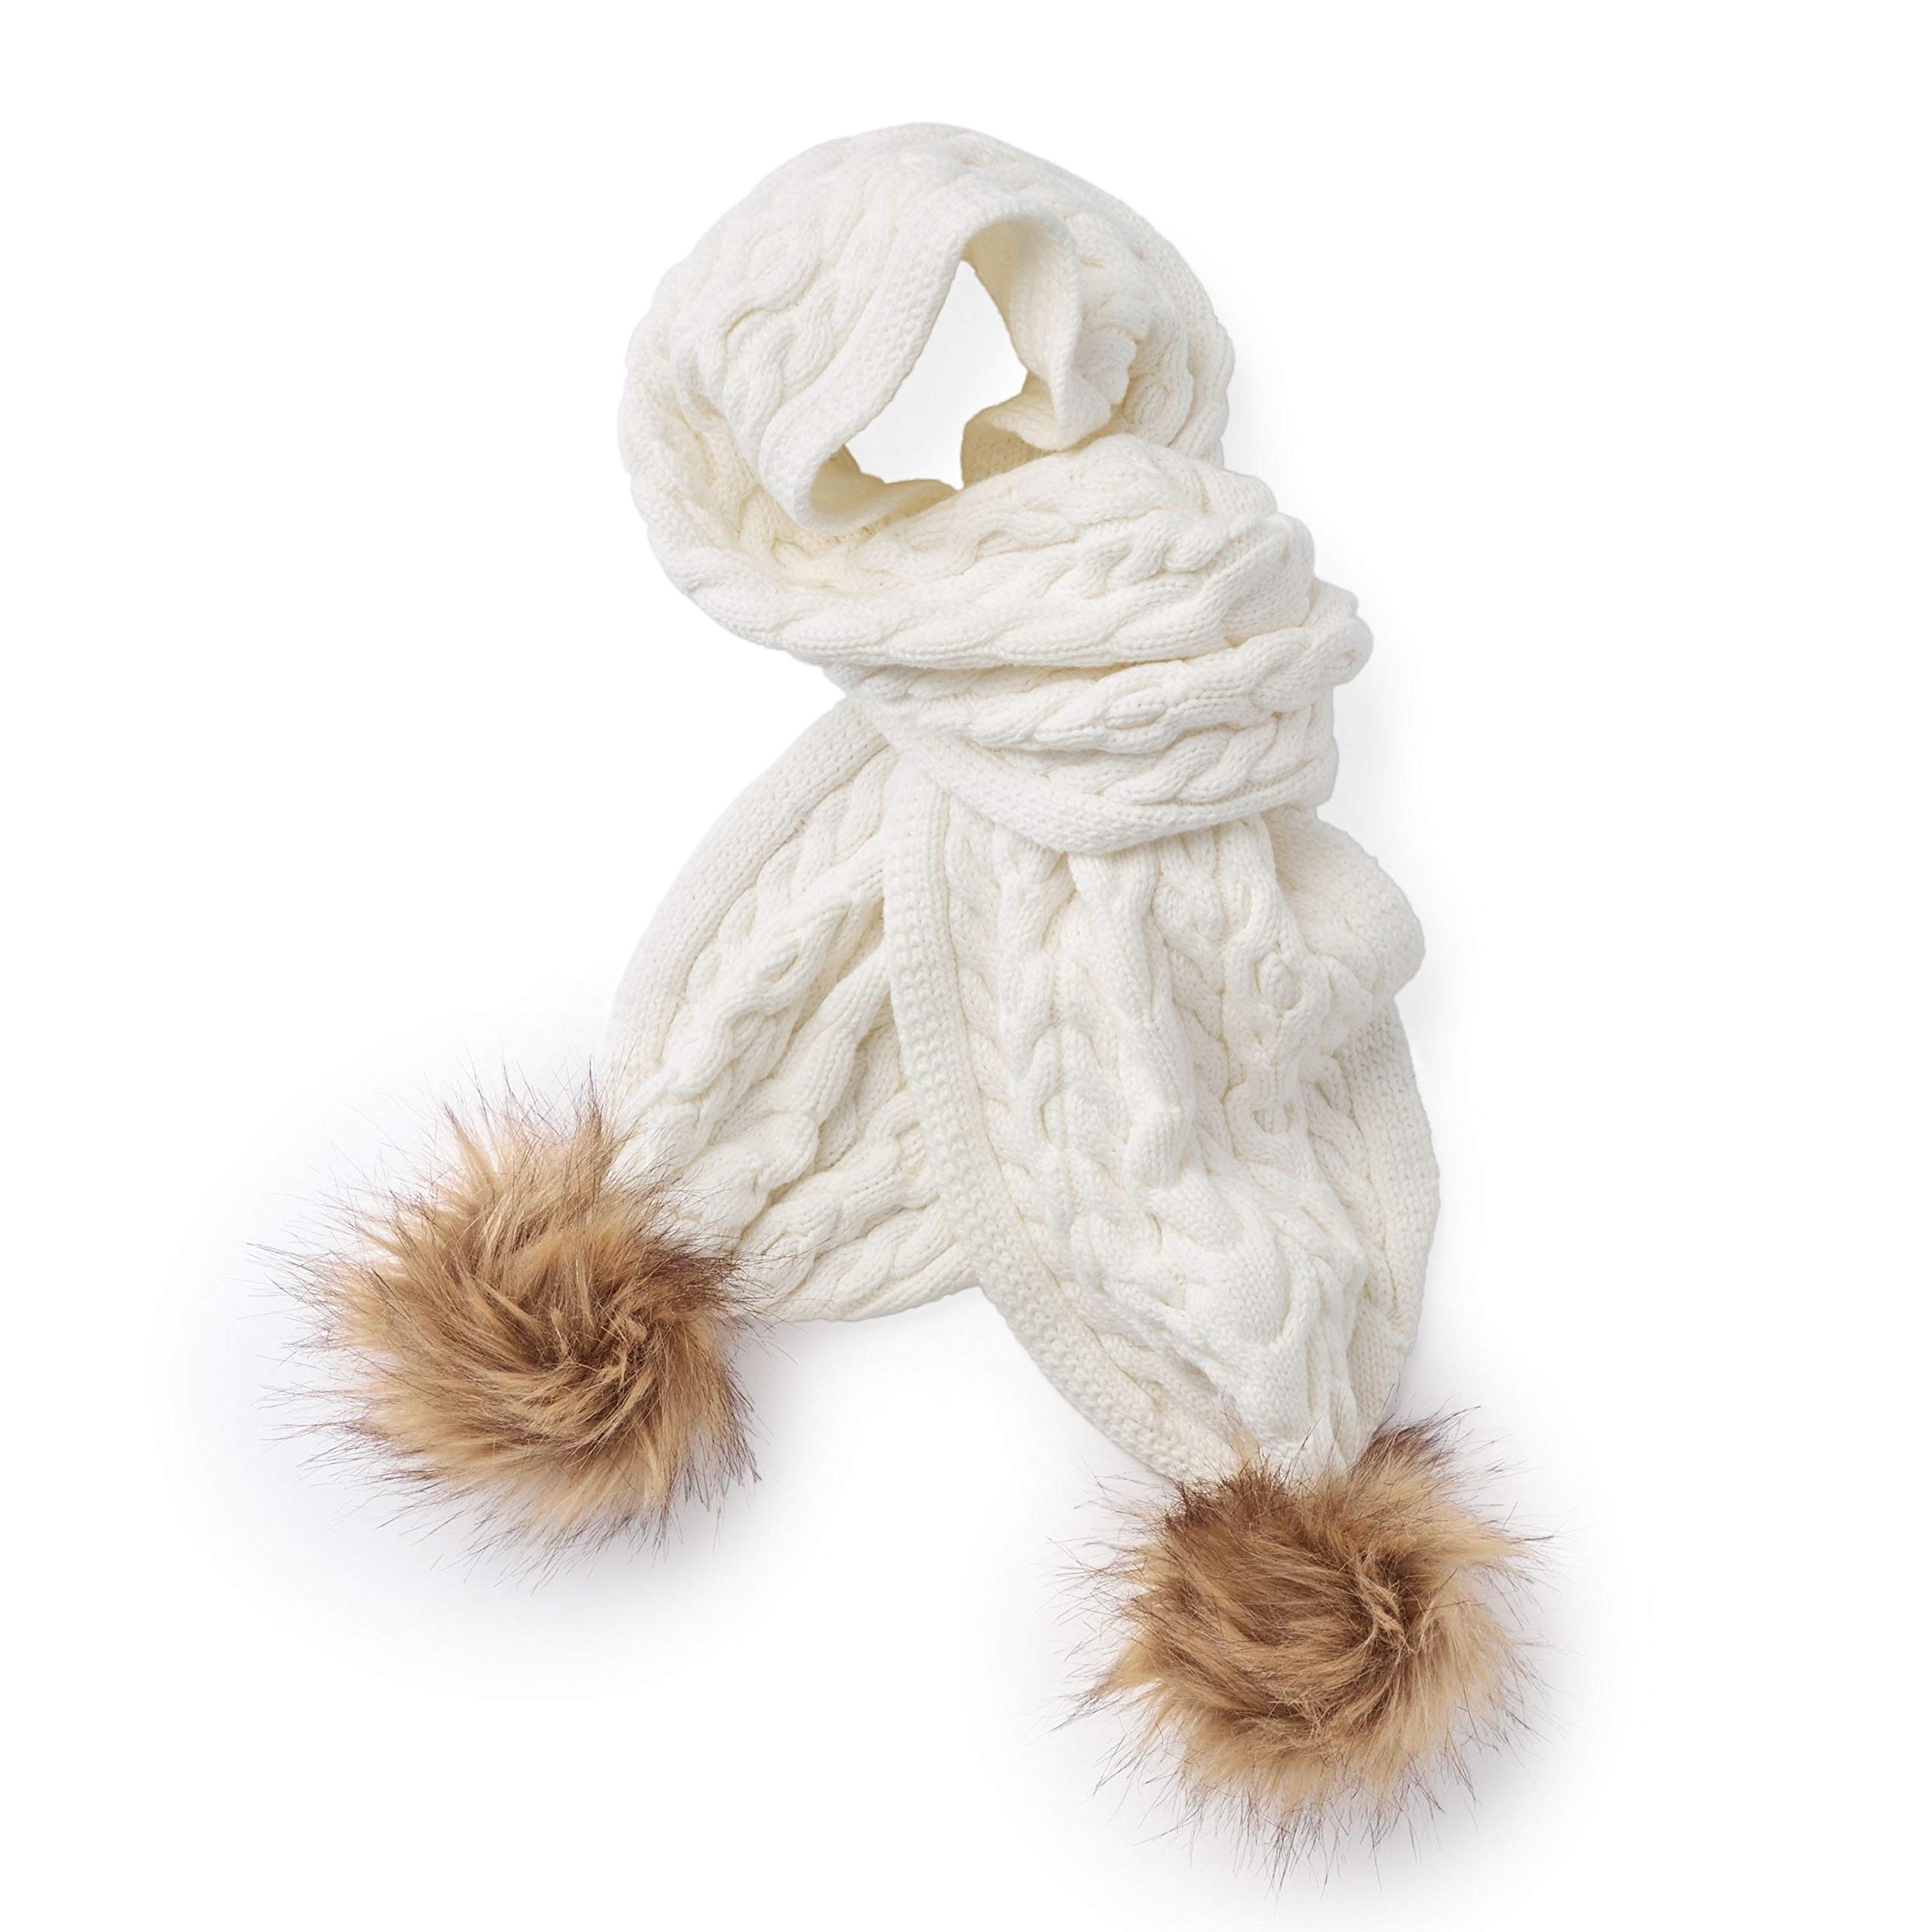 Hope & Henry Girls' White Scarf with Poms Made with Organic Cotton